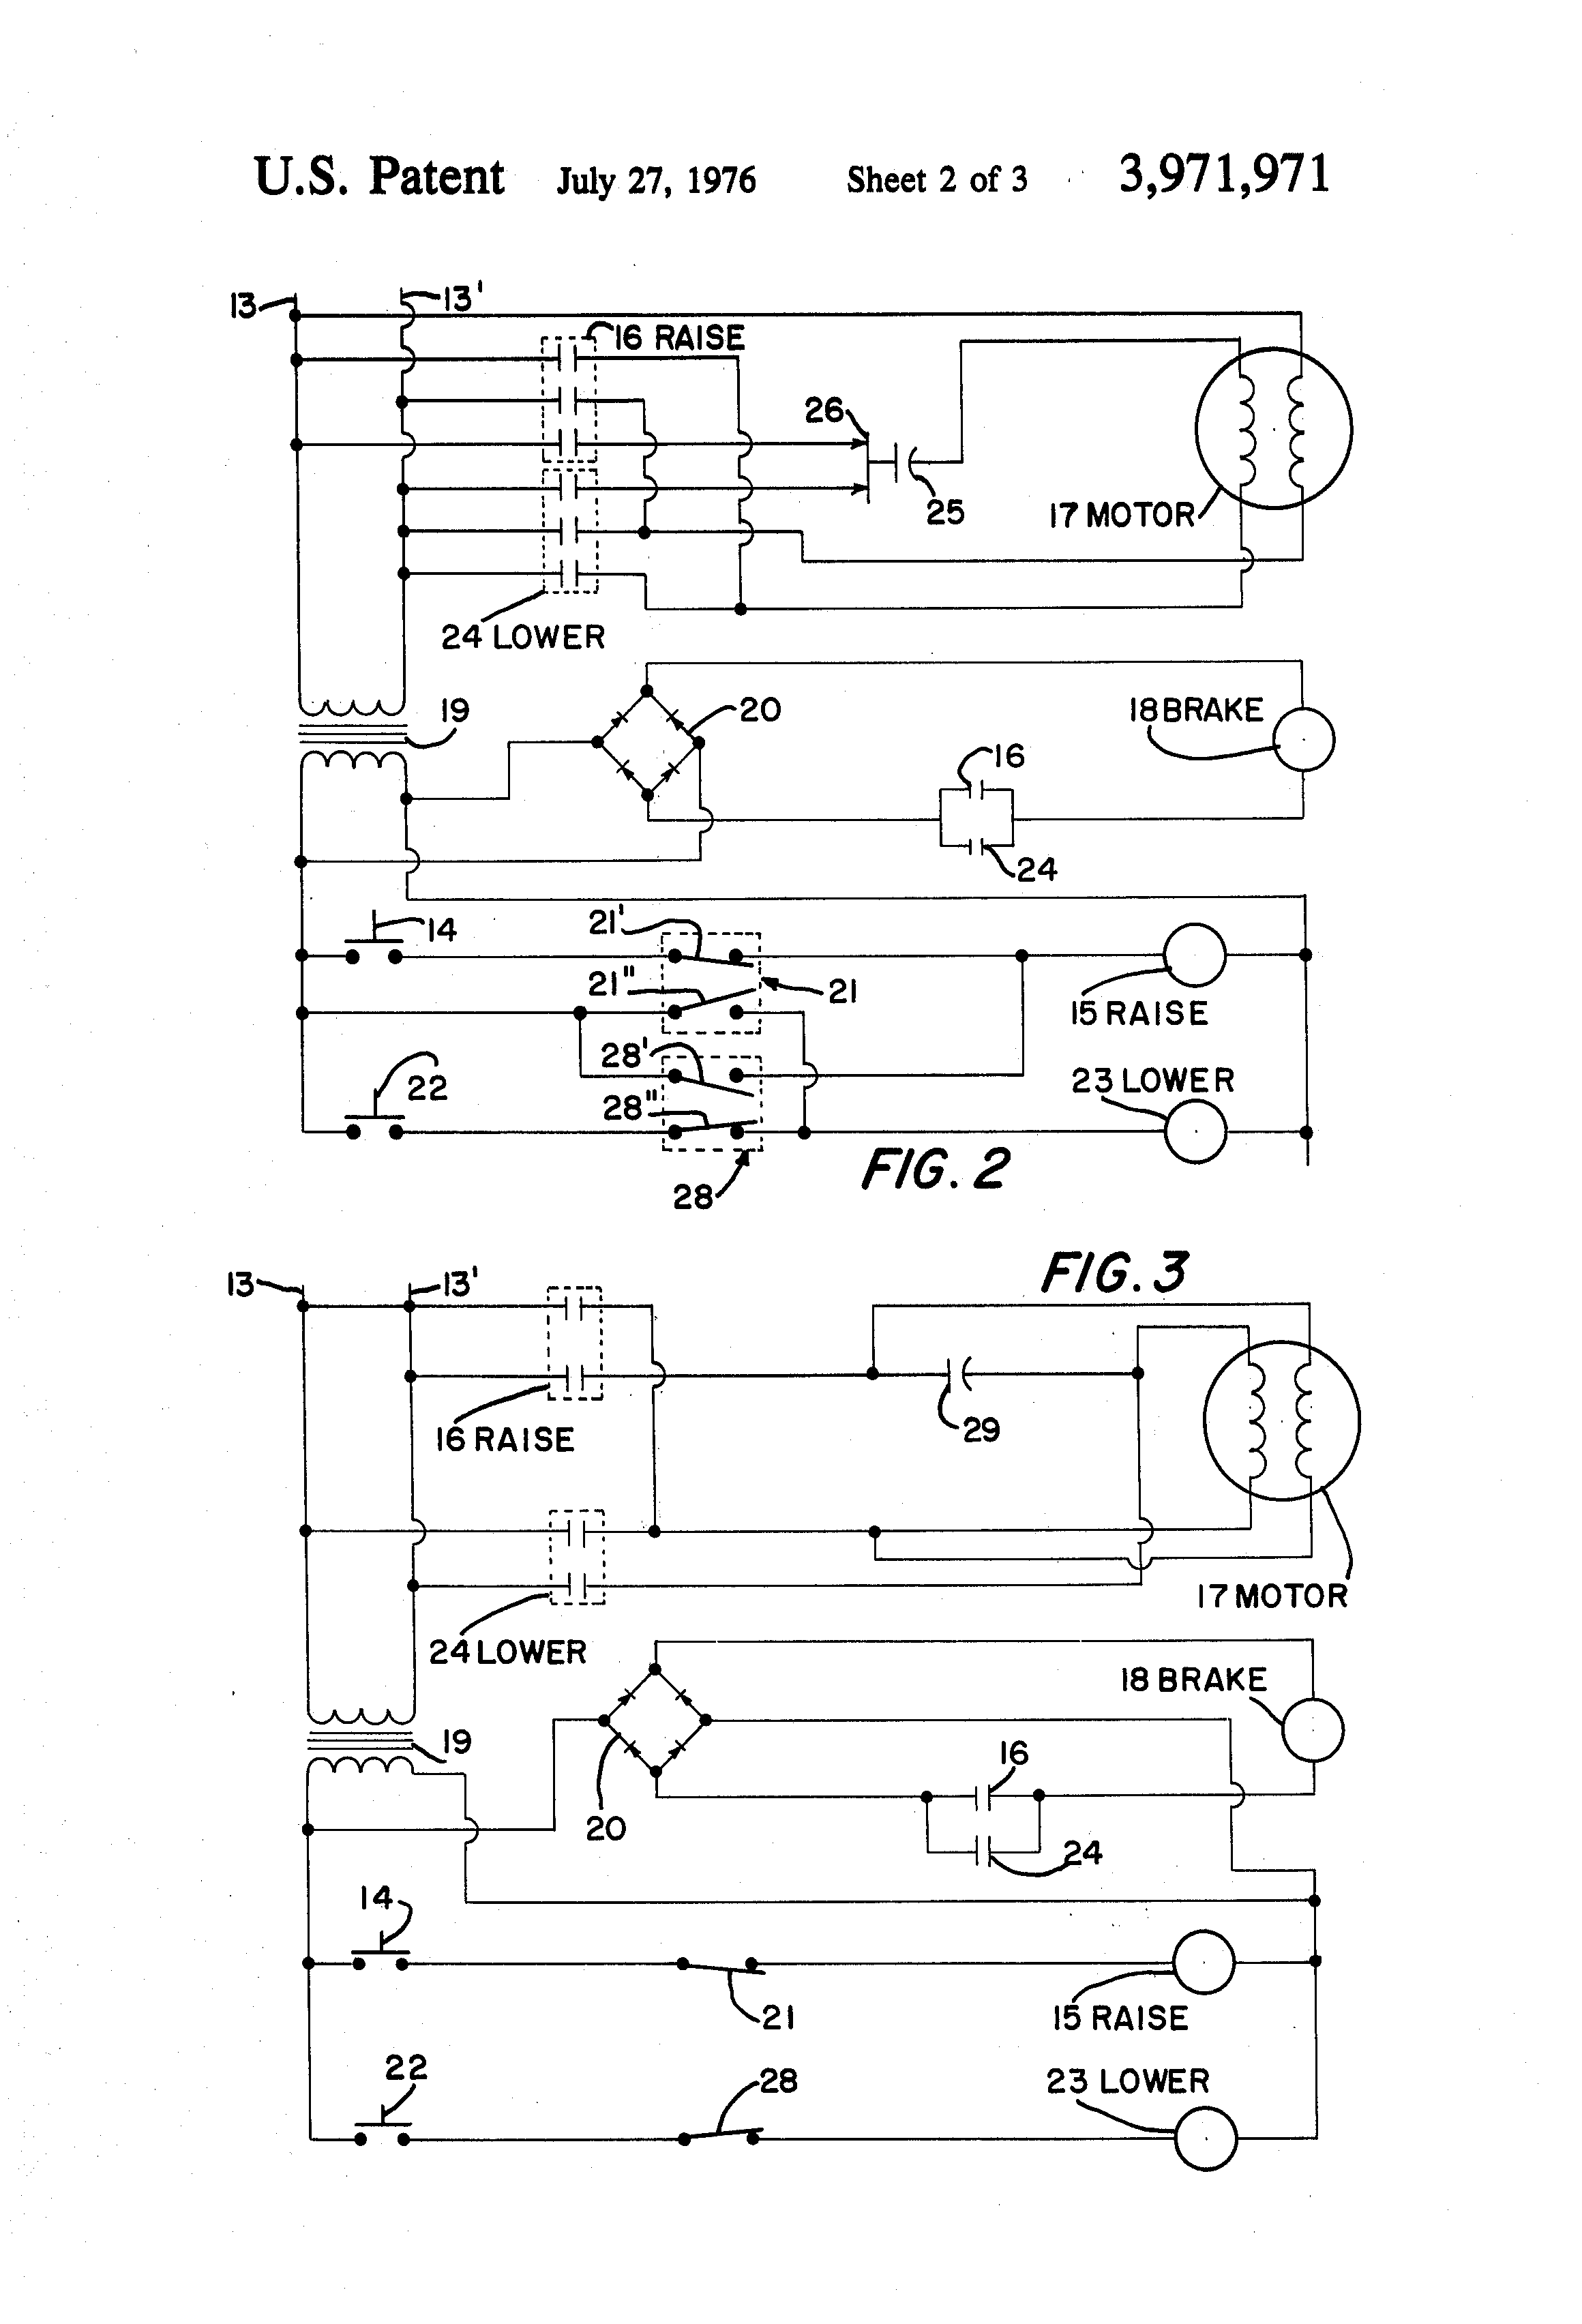 US3971971 2 demag motor wiring diagram ingersoll rand wiring diagram \u2022 wiring ingersoll rand wiring diagrams at bayanpartner.co